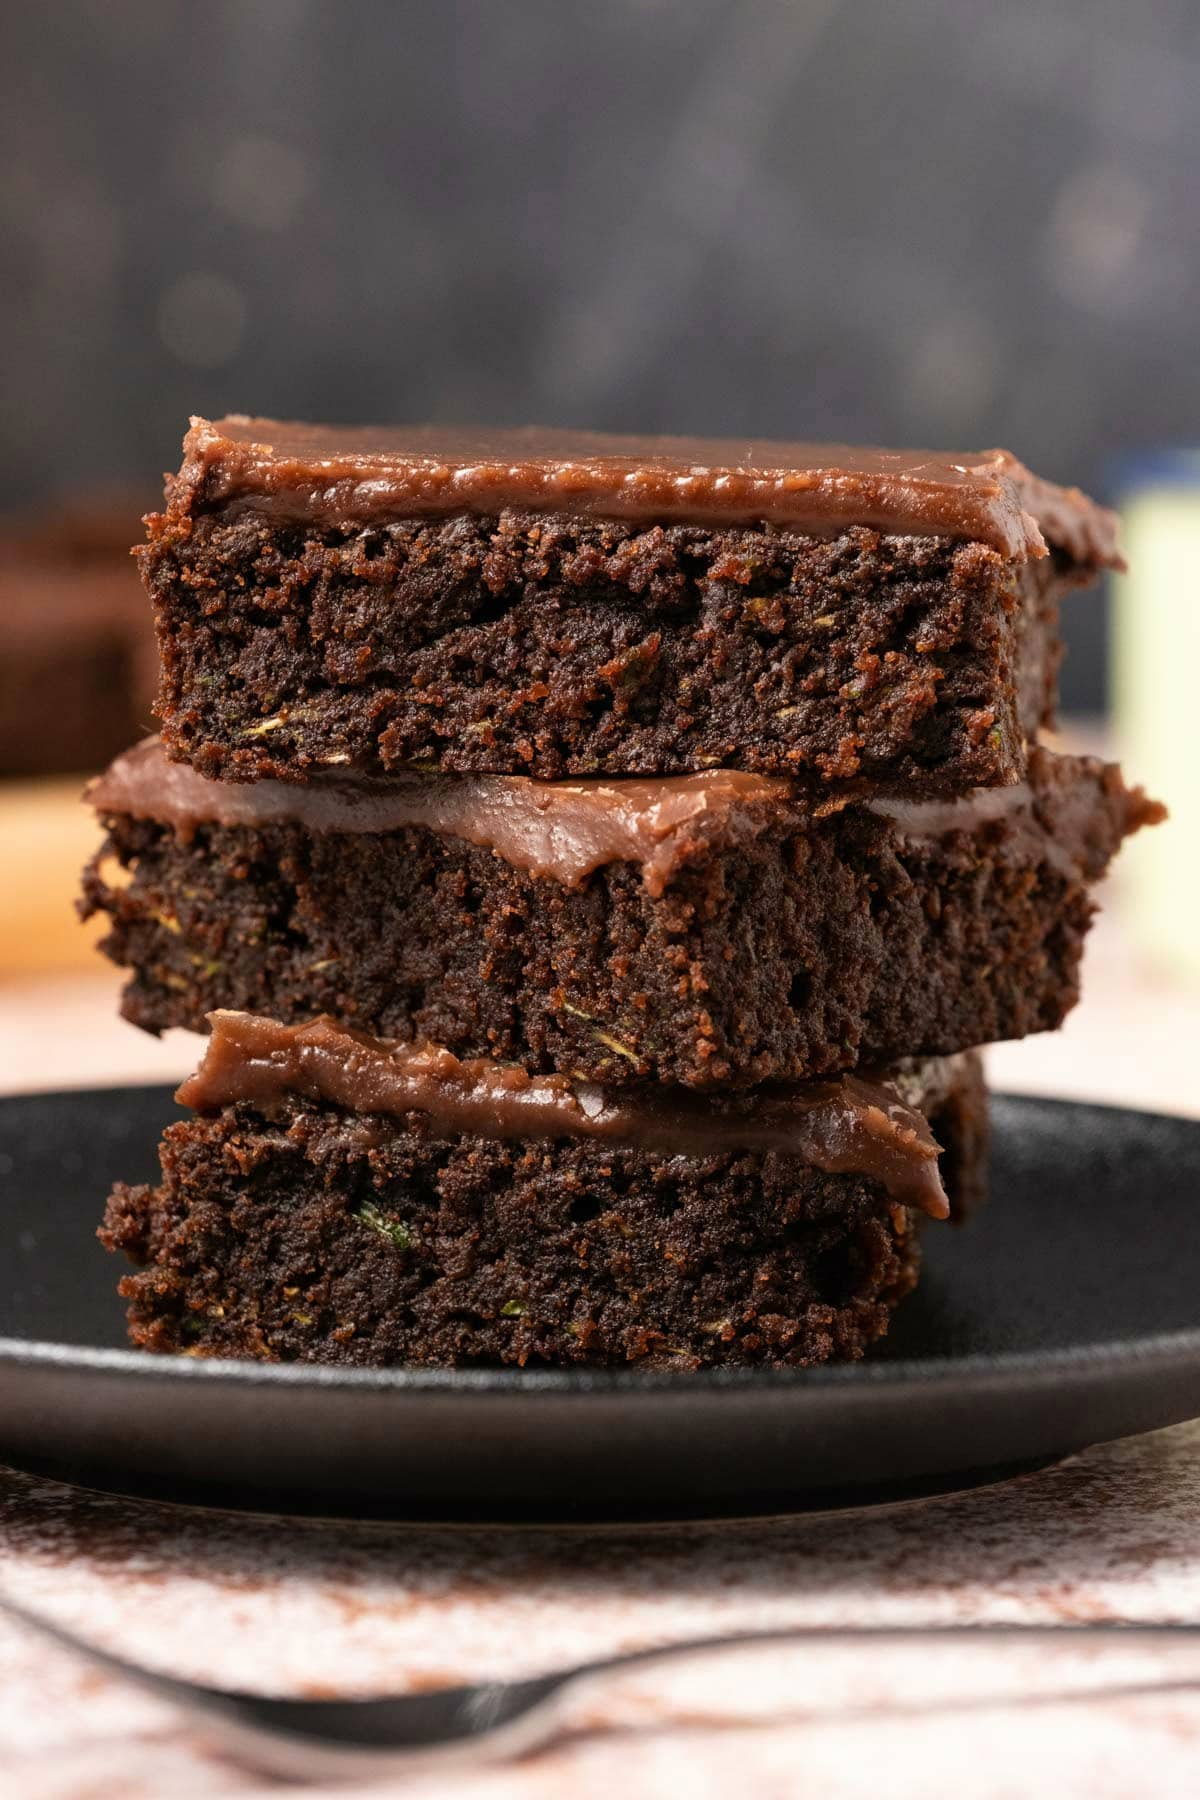 Zucchini brownies stacked up on a black plate.